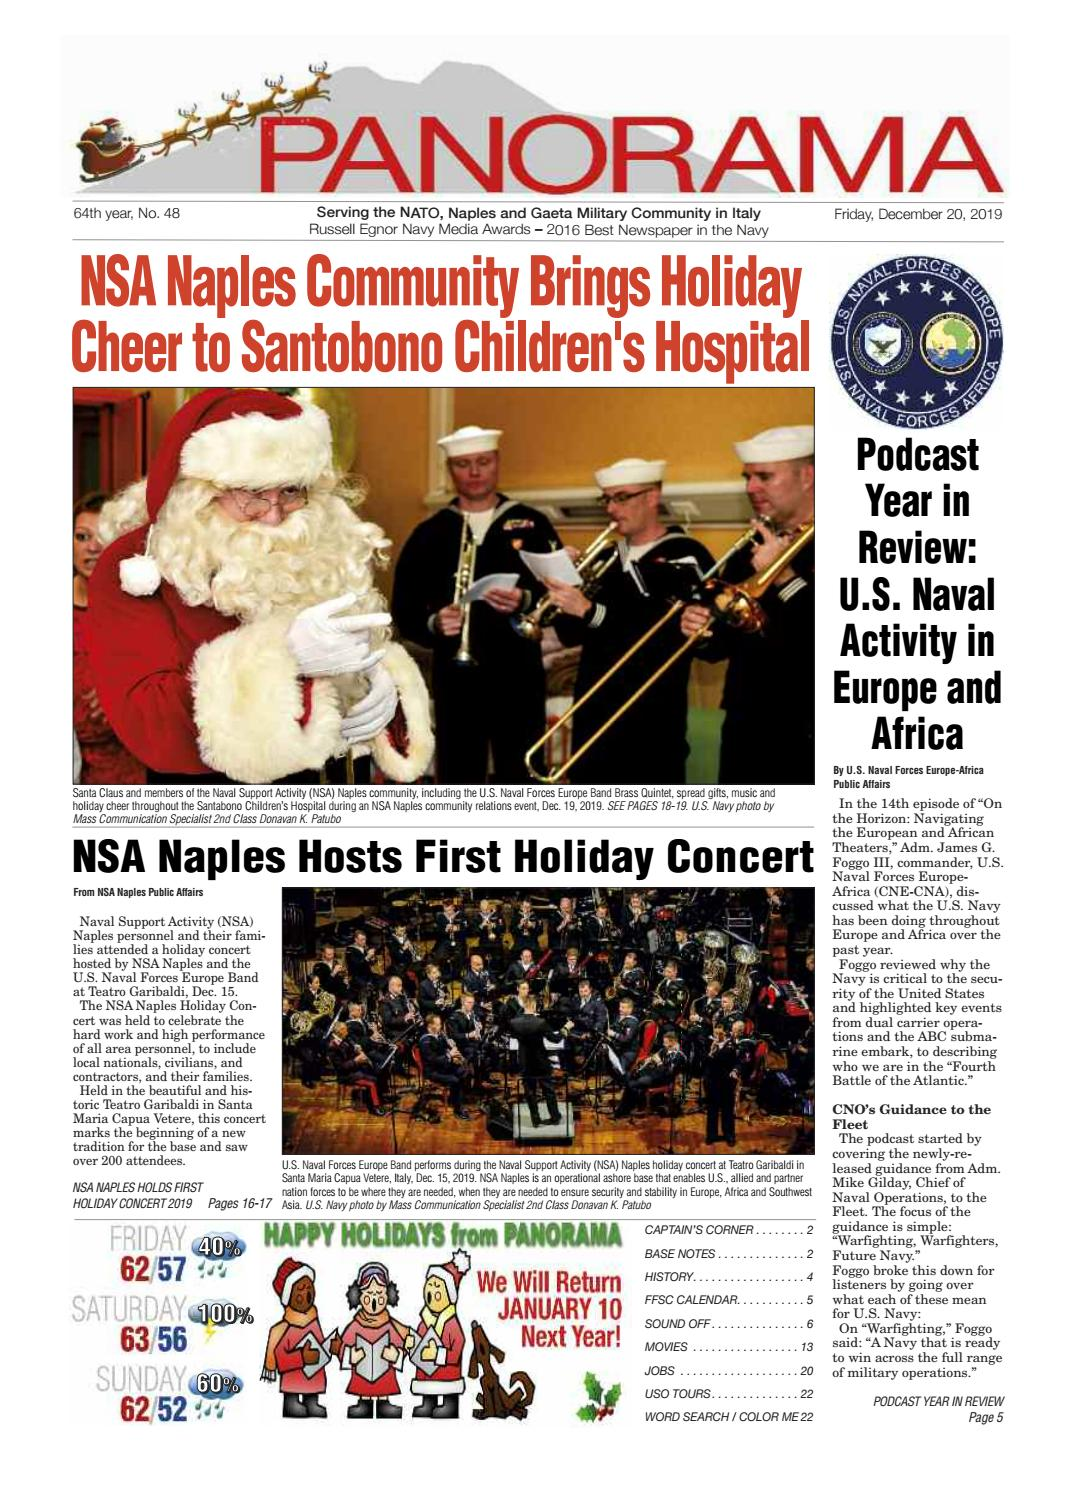 10 holiday decorating ideas for your office cubicle.htm panorama december 20  2019 by nsa naples issuu  nsa naples